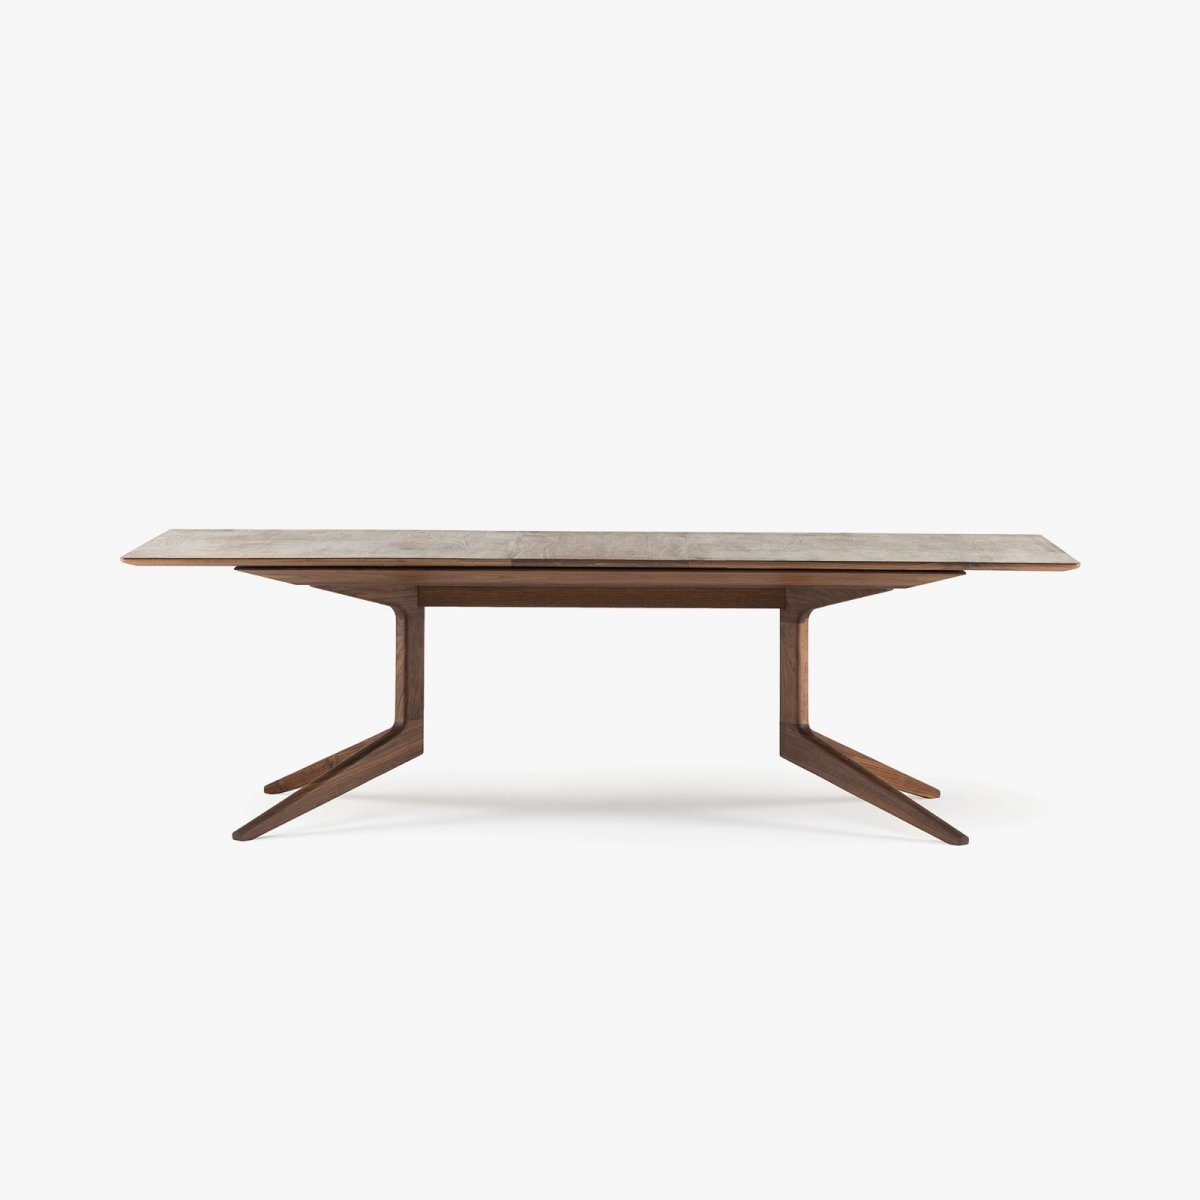 341E Light Extending Table in Danish oiled walnut, 1 leaf in place.